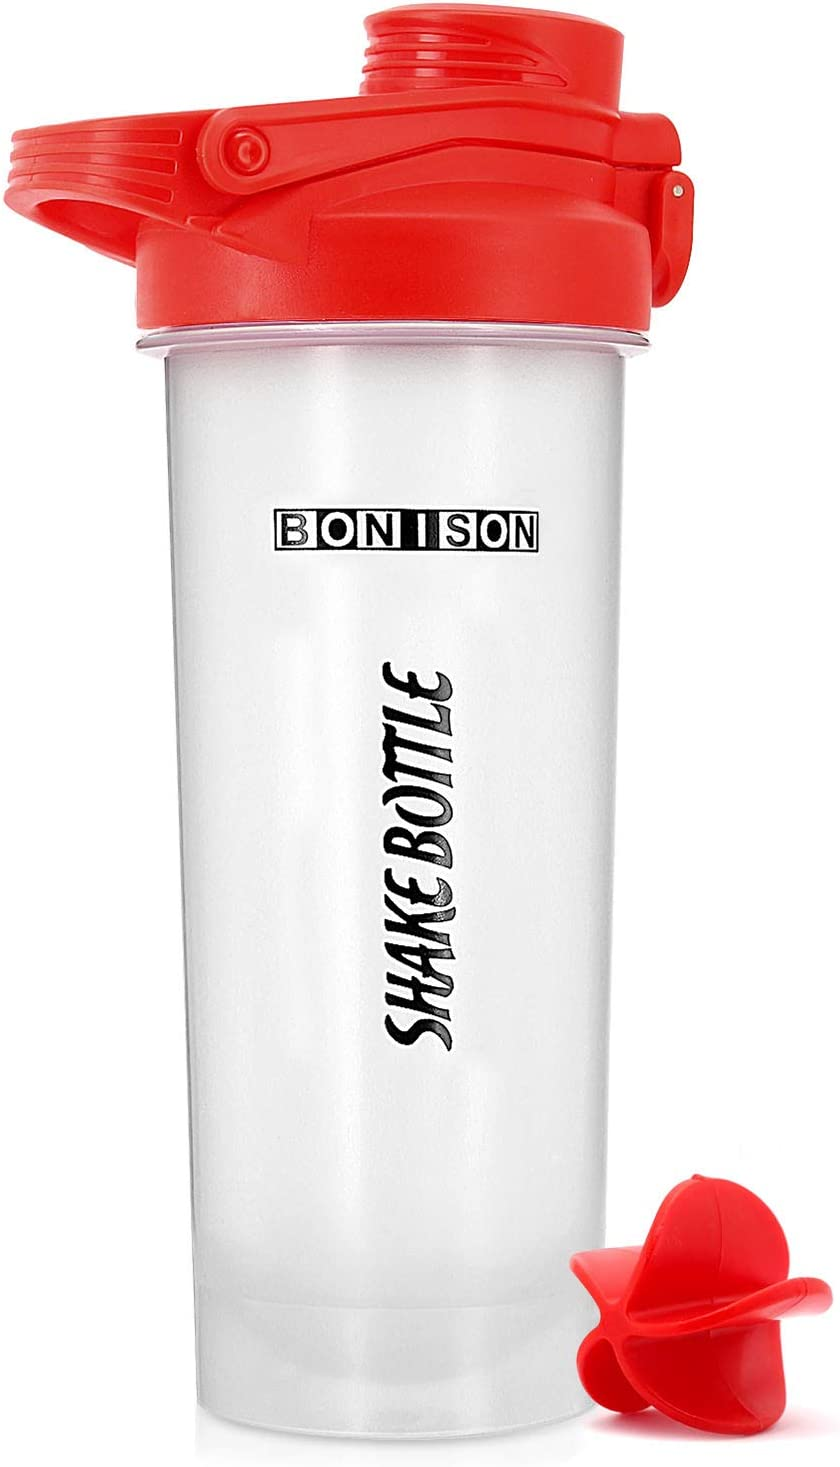 HOOPLE Shaker Bottle Protein Powder Shake Blender Gym Smoothie Cup, BPA Free, Auto-Flip Leak-Proof Lid, Handle with Ball Included - 24 Ounce